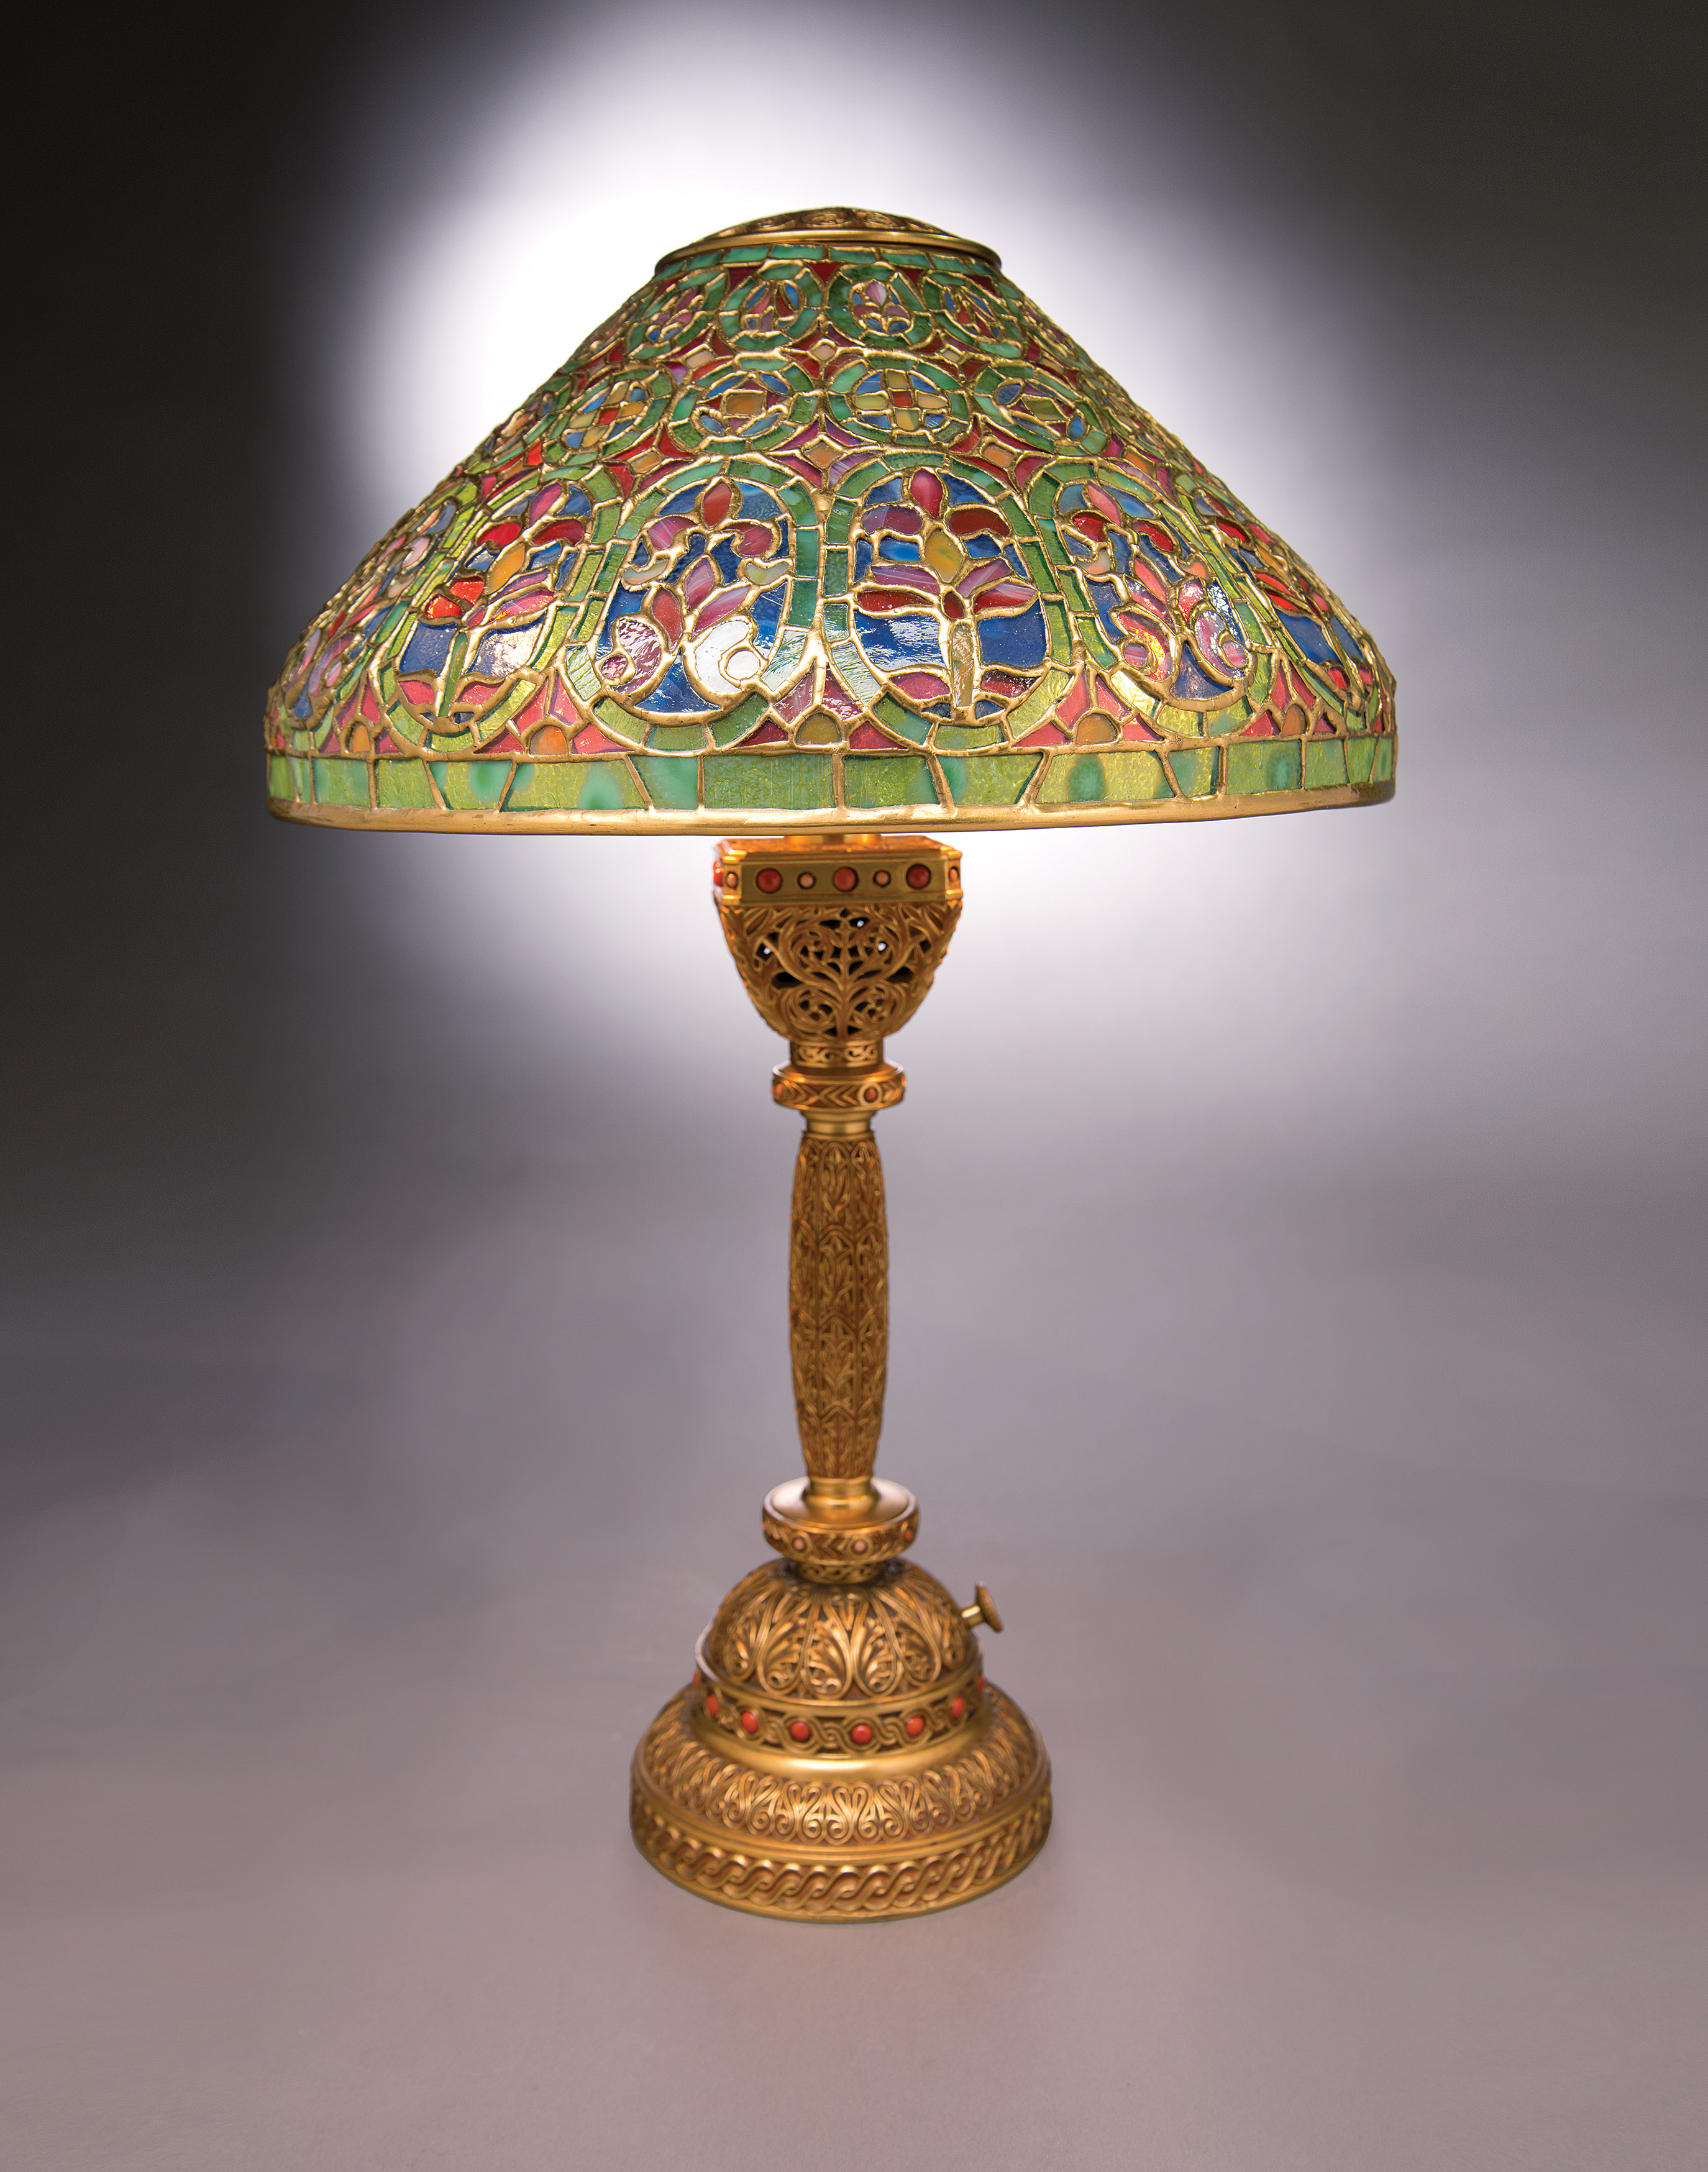 Tiffany glass continues to make lighting magical the venetian9th century lamp with its intricate shade and base complements tiffany desk accessories arubaitofo Gallery